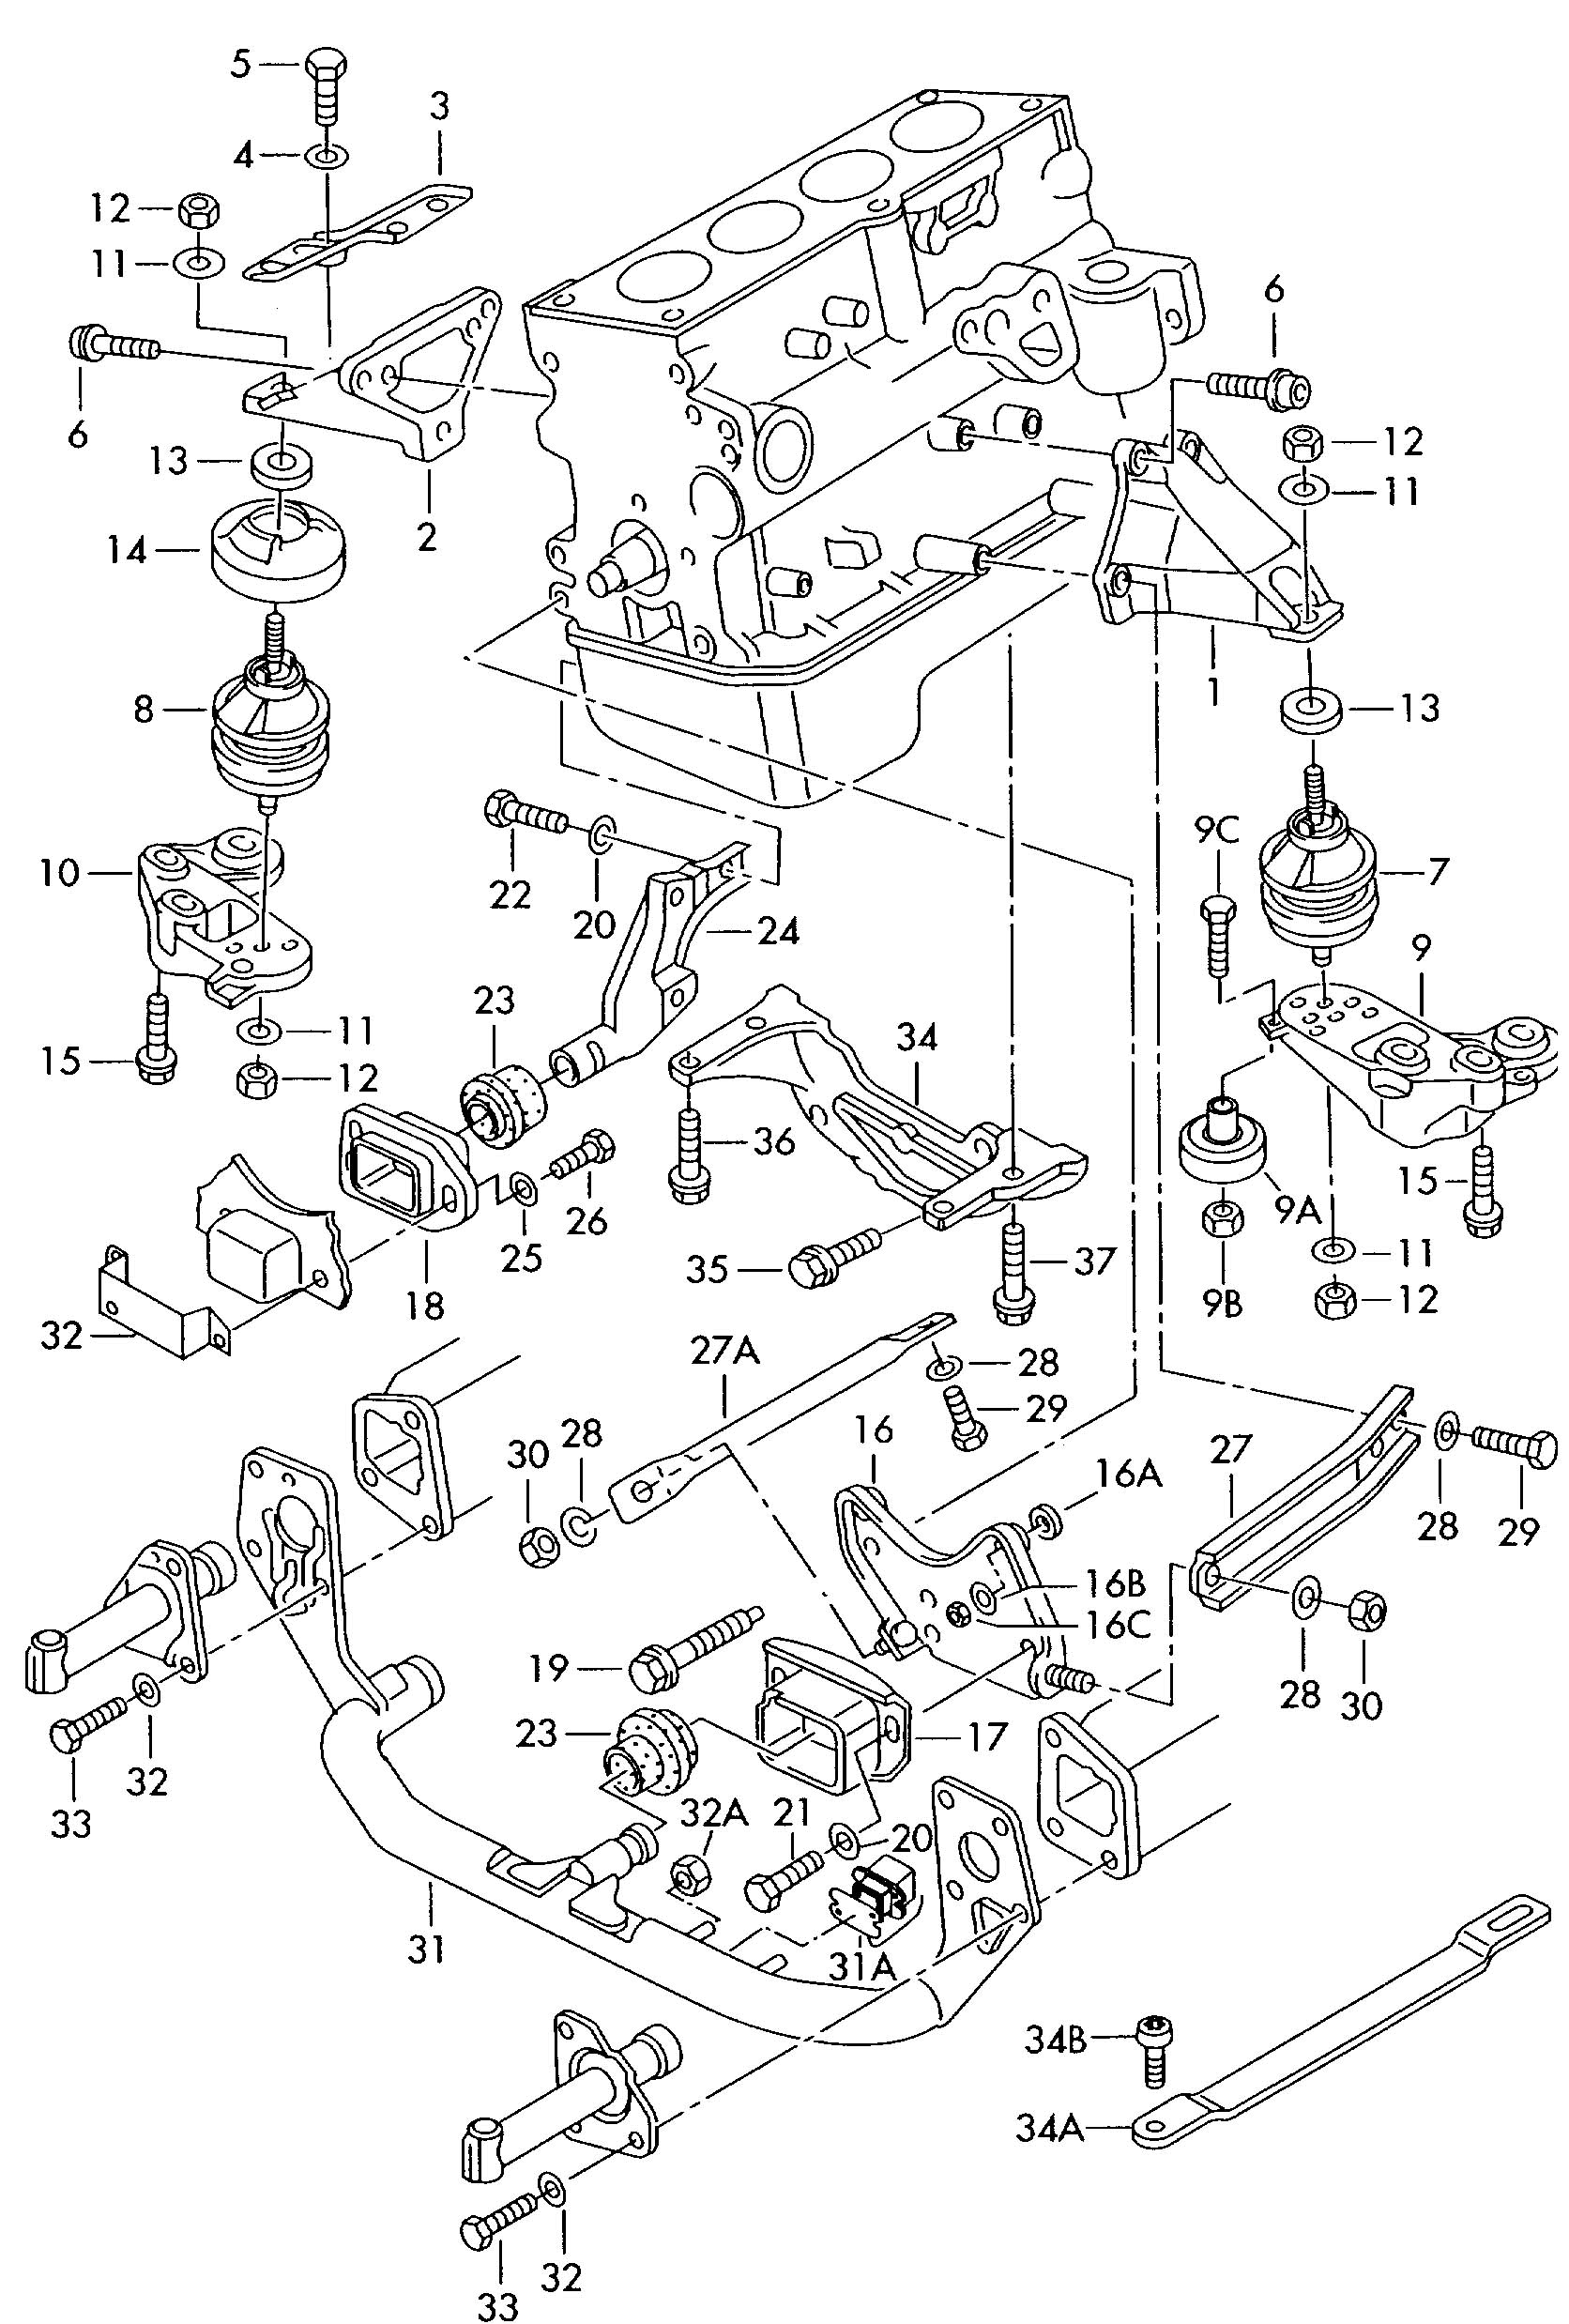 2003 vw golf engine diagram wiring diagram and fuse box 156199200 2003 vw golf engine diagram